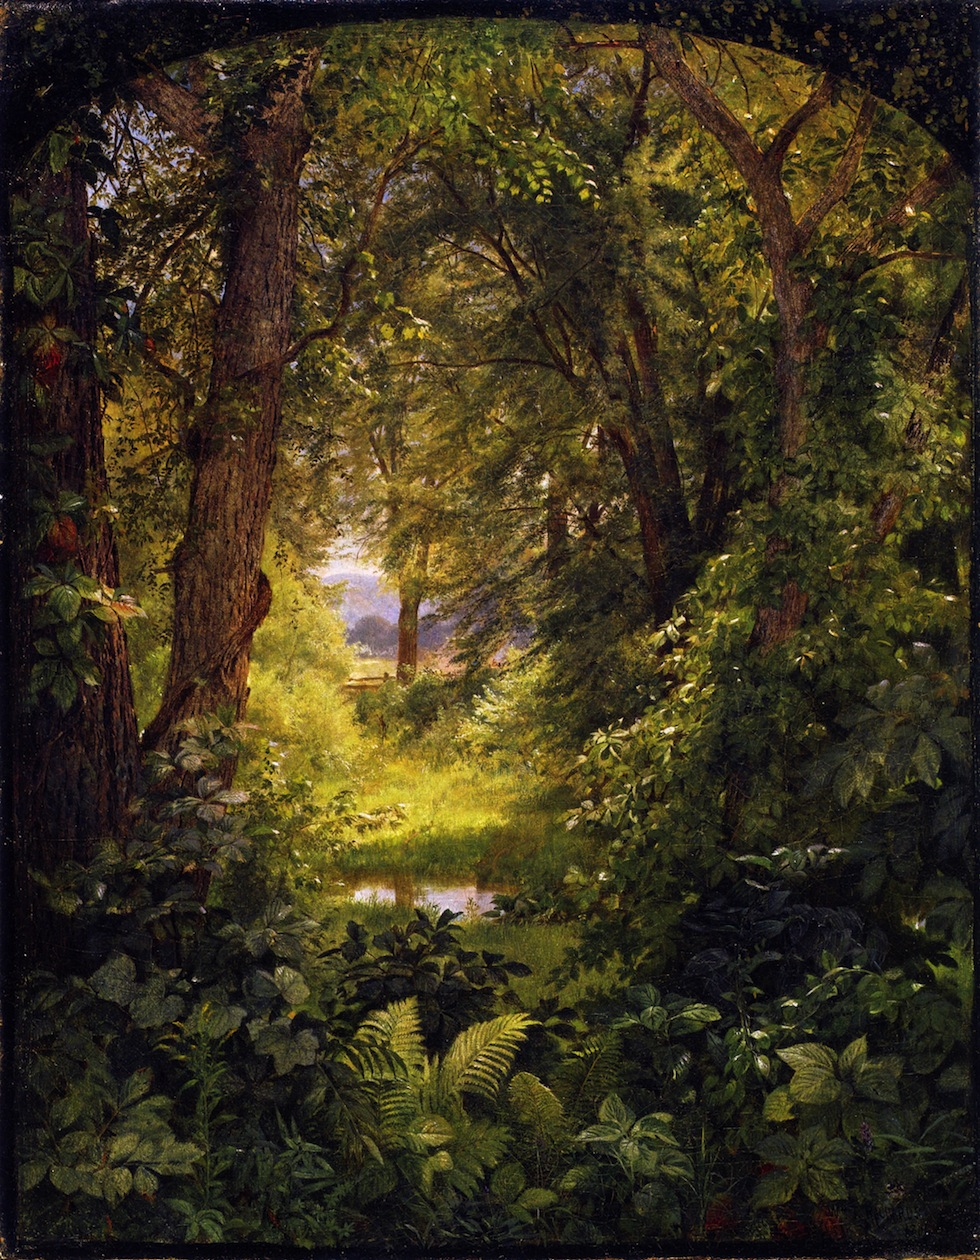 also known as Woodland Glade, 1860, oil on canvas, Private collection